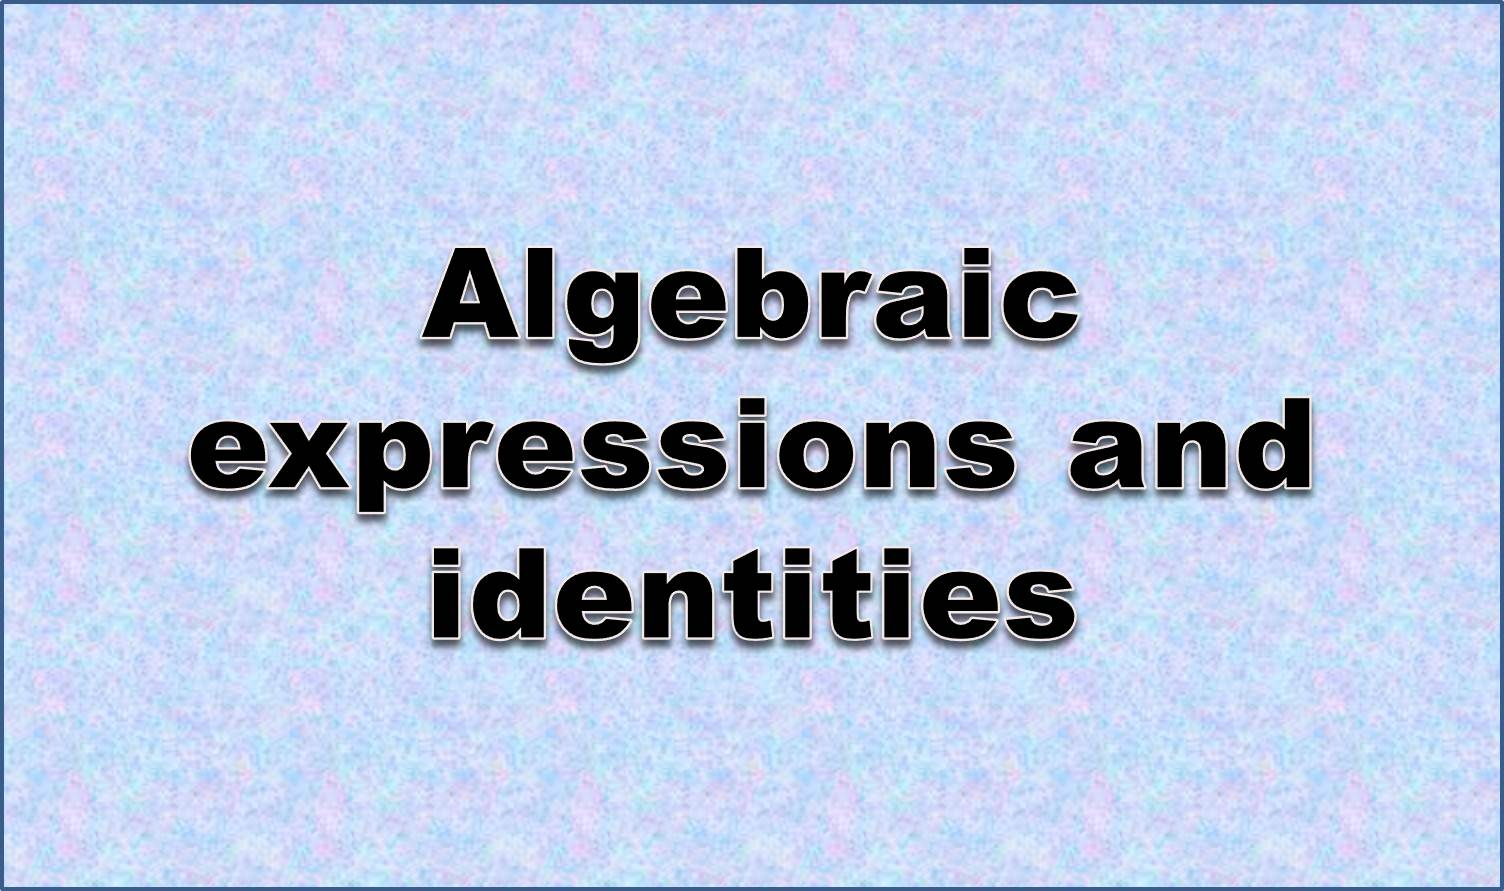 http://study.aisectonline.com/images/Multiplying monomials by polynomials.jpg